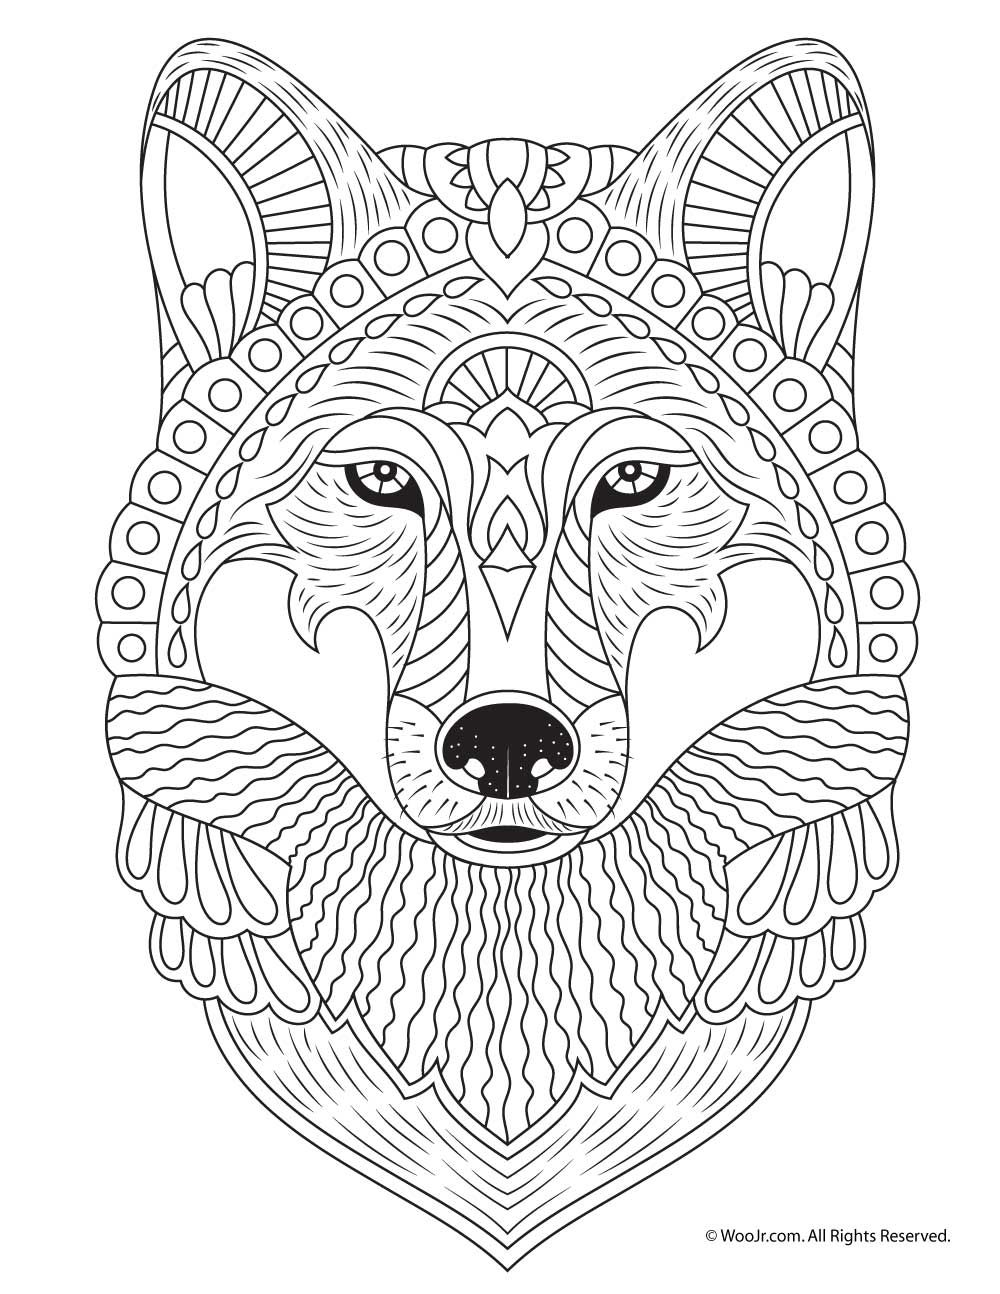 Wolf Adult Coloring Page Adult Coloring Animals Cool Coloring Pages